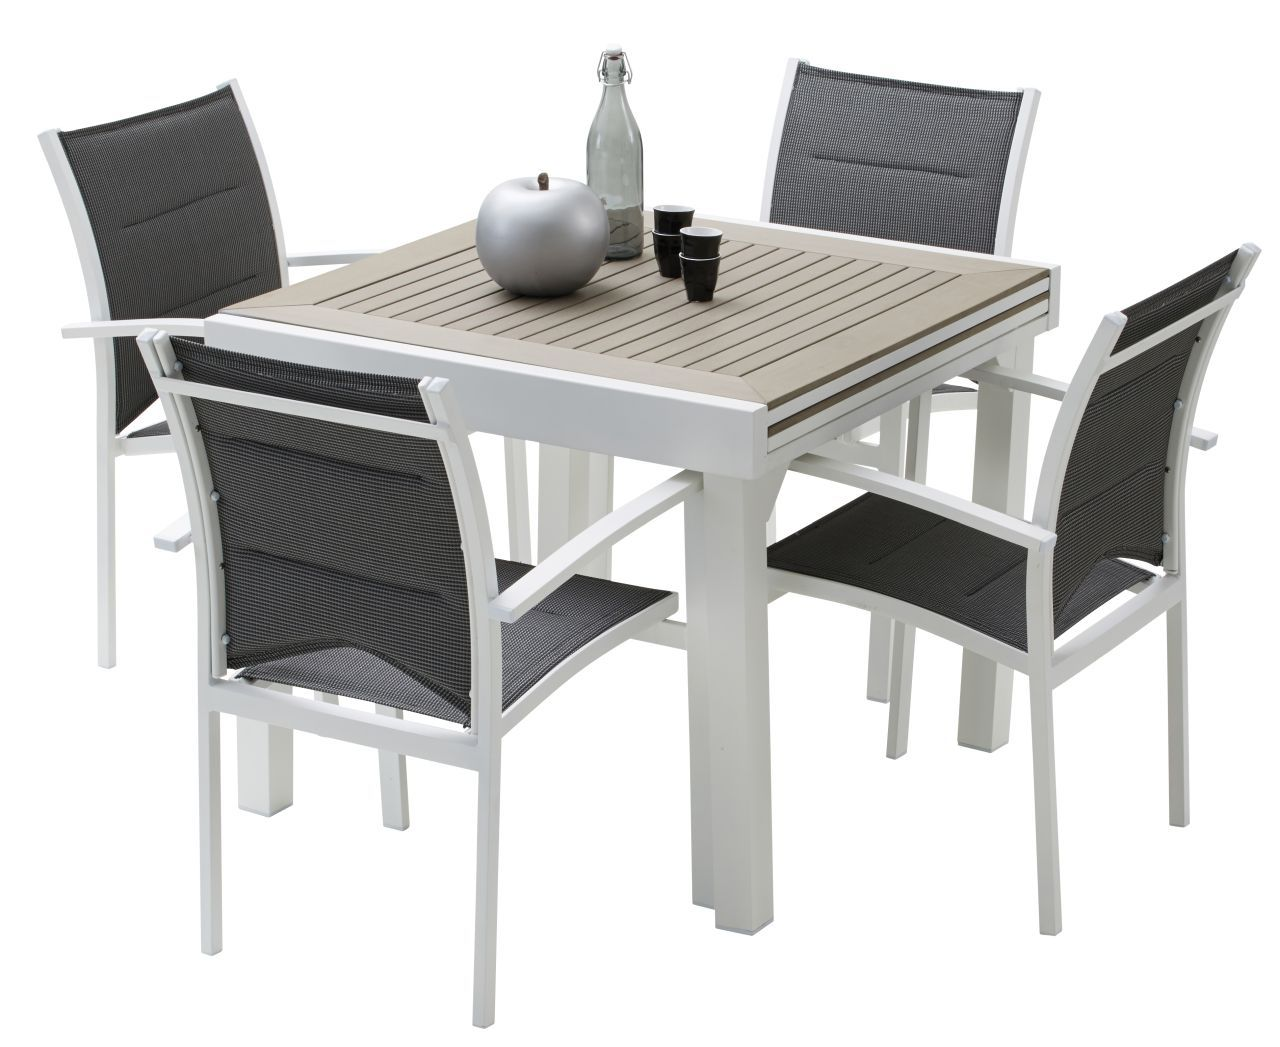 Ensemble salon de jardin modulo 4 places places polywood - Table de jardin extensible plateau verre ...